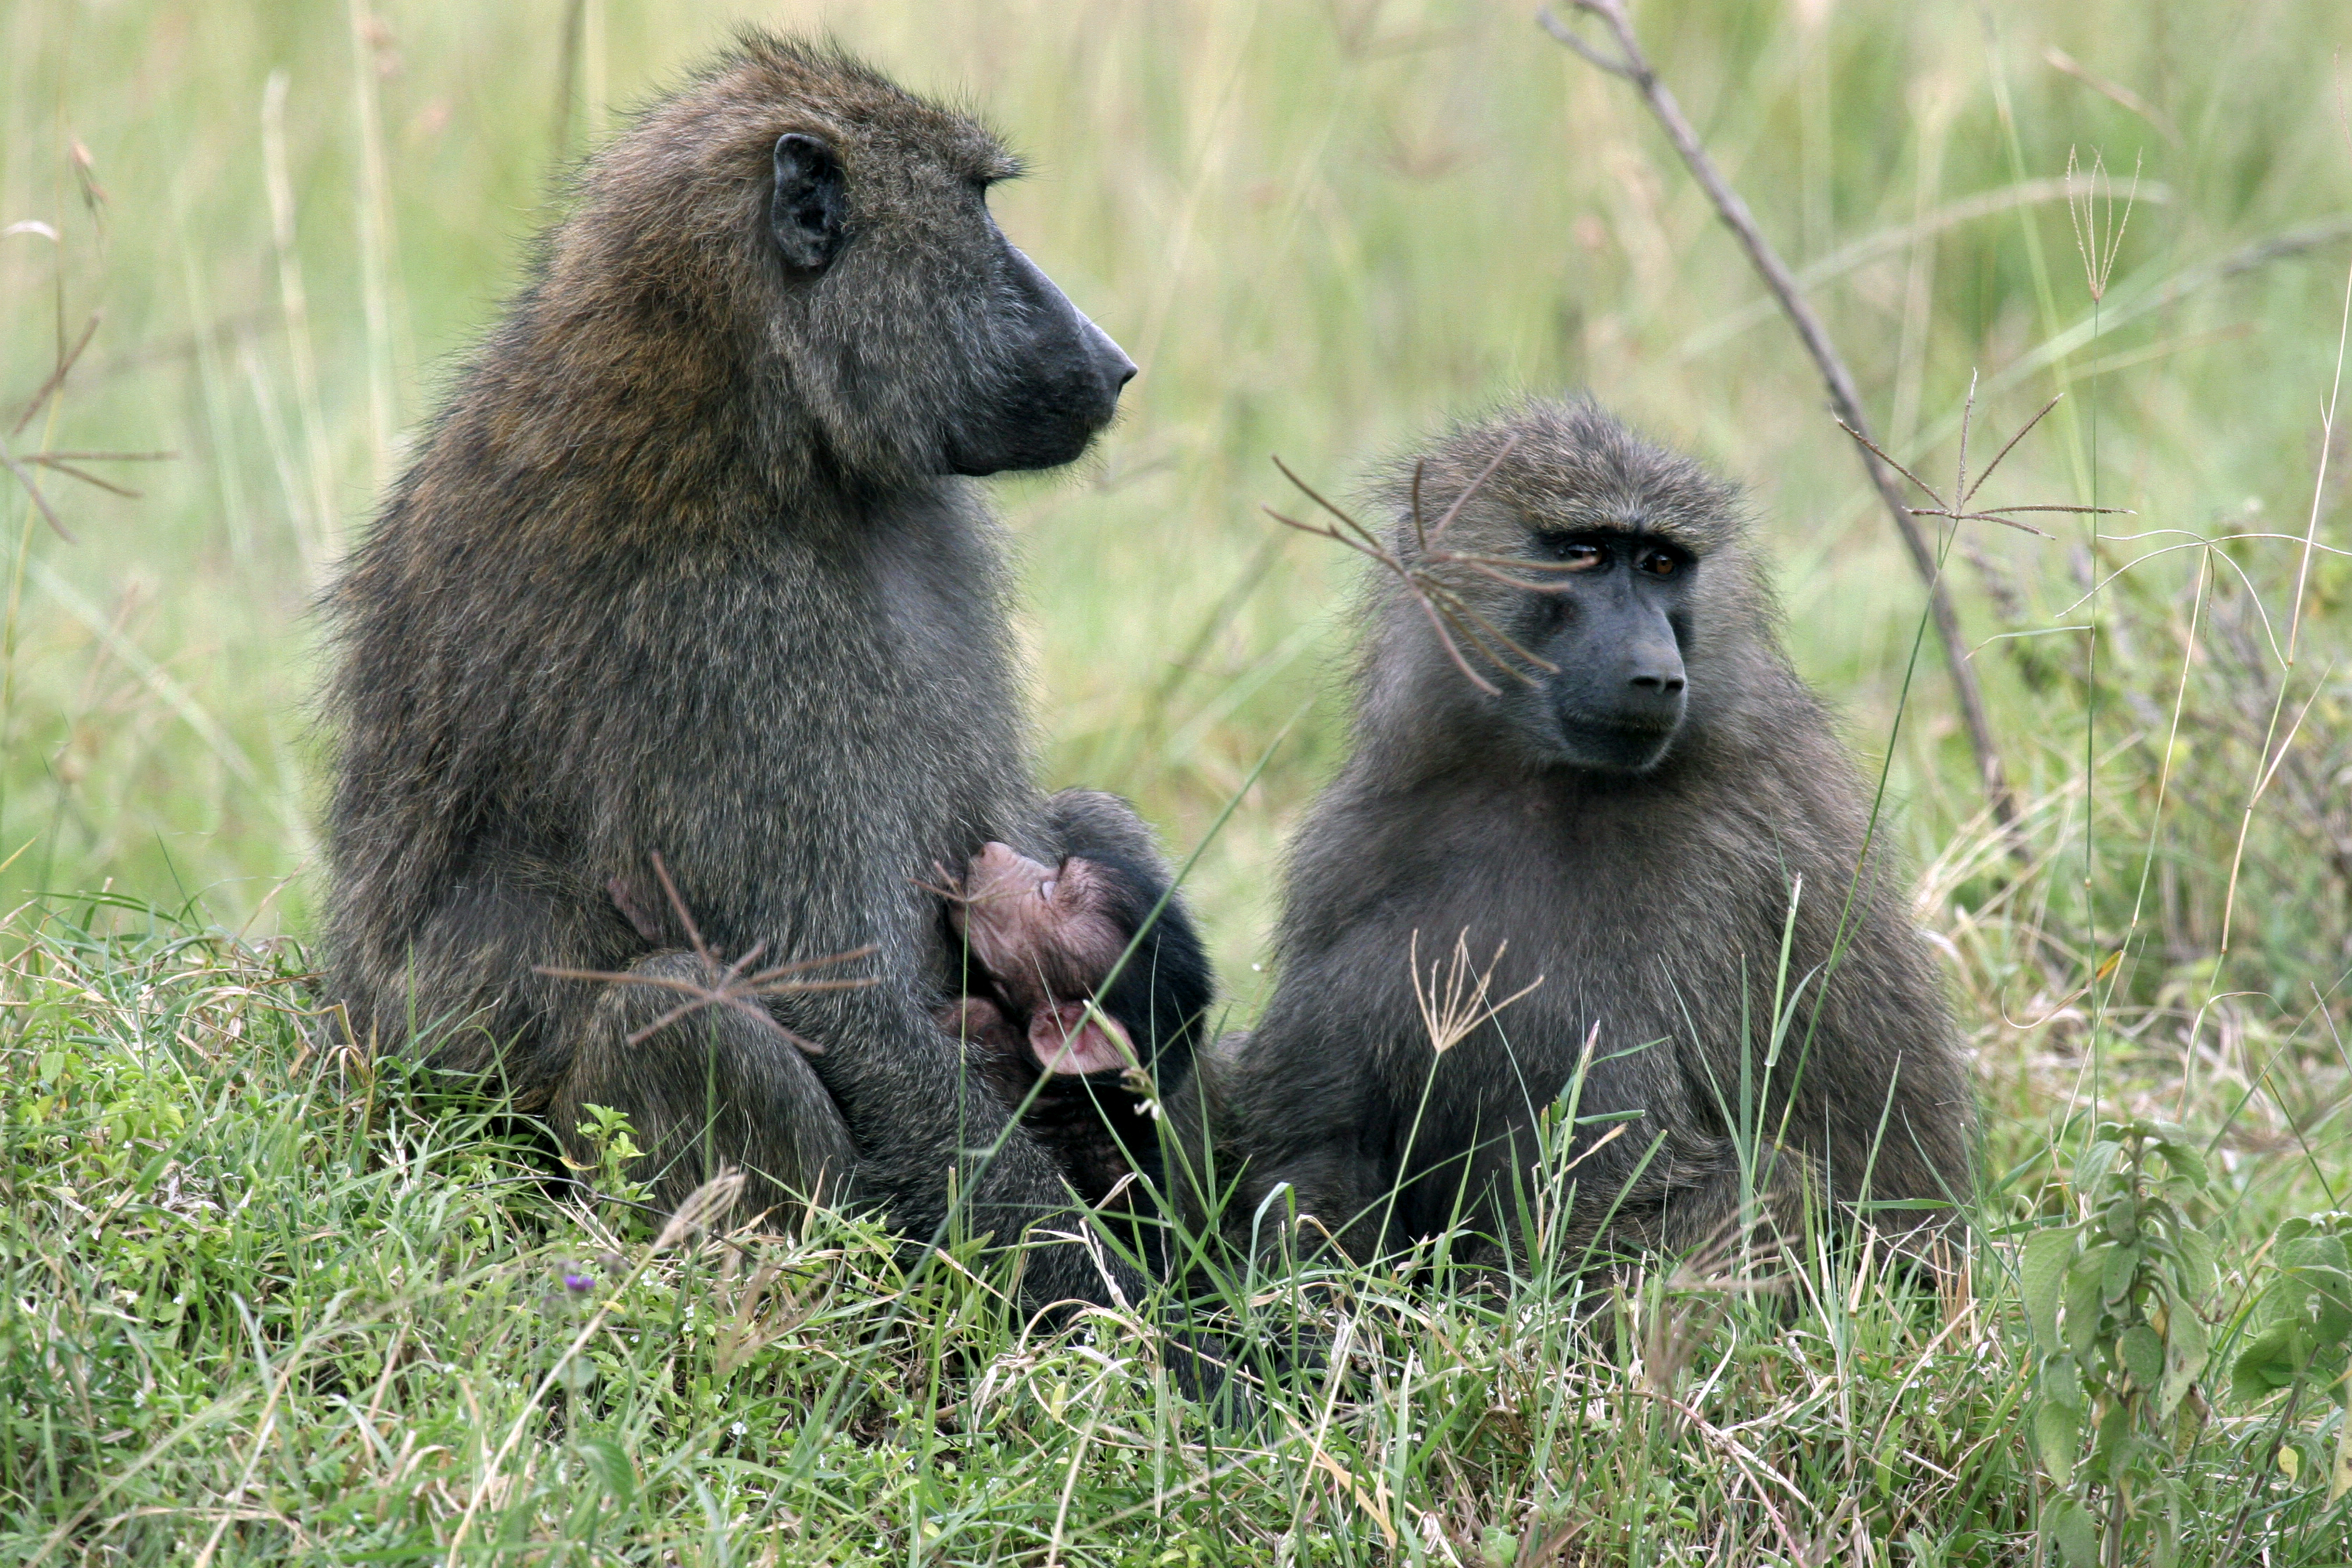 photo image Idaho Wildlife Official Resigns After Backlash For Killing Baboon Family